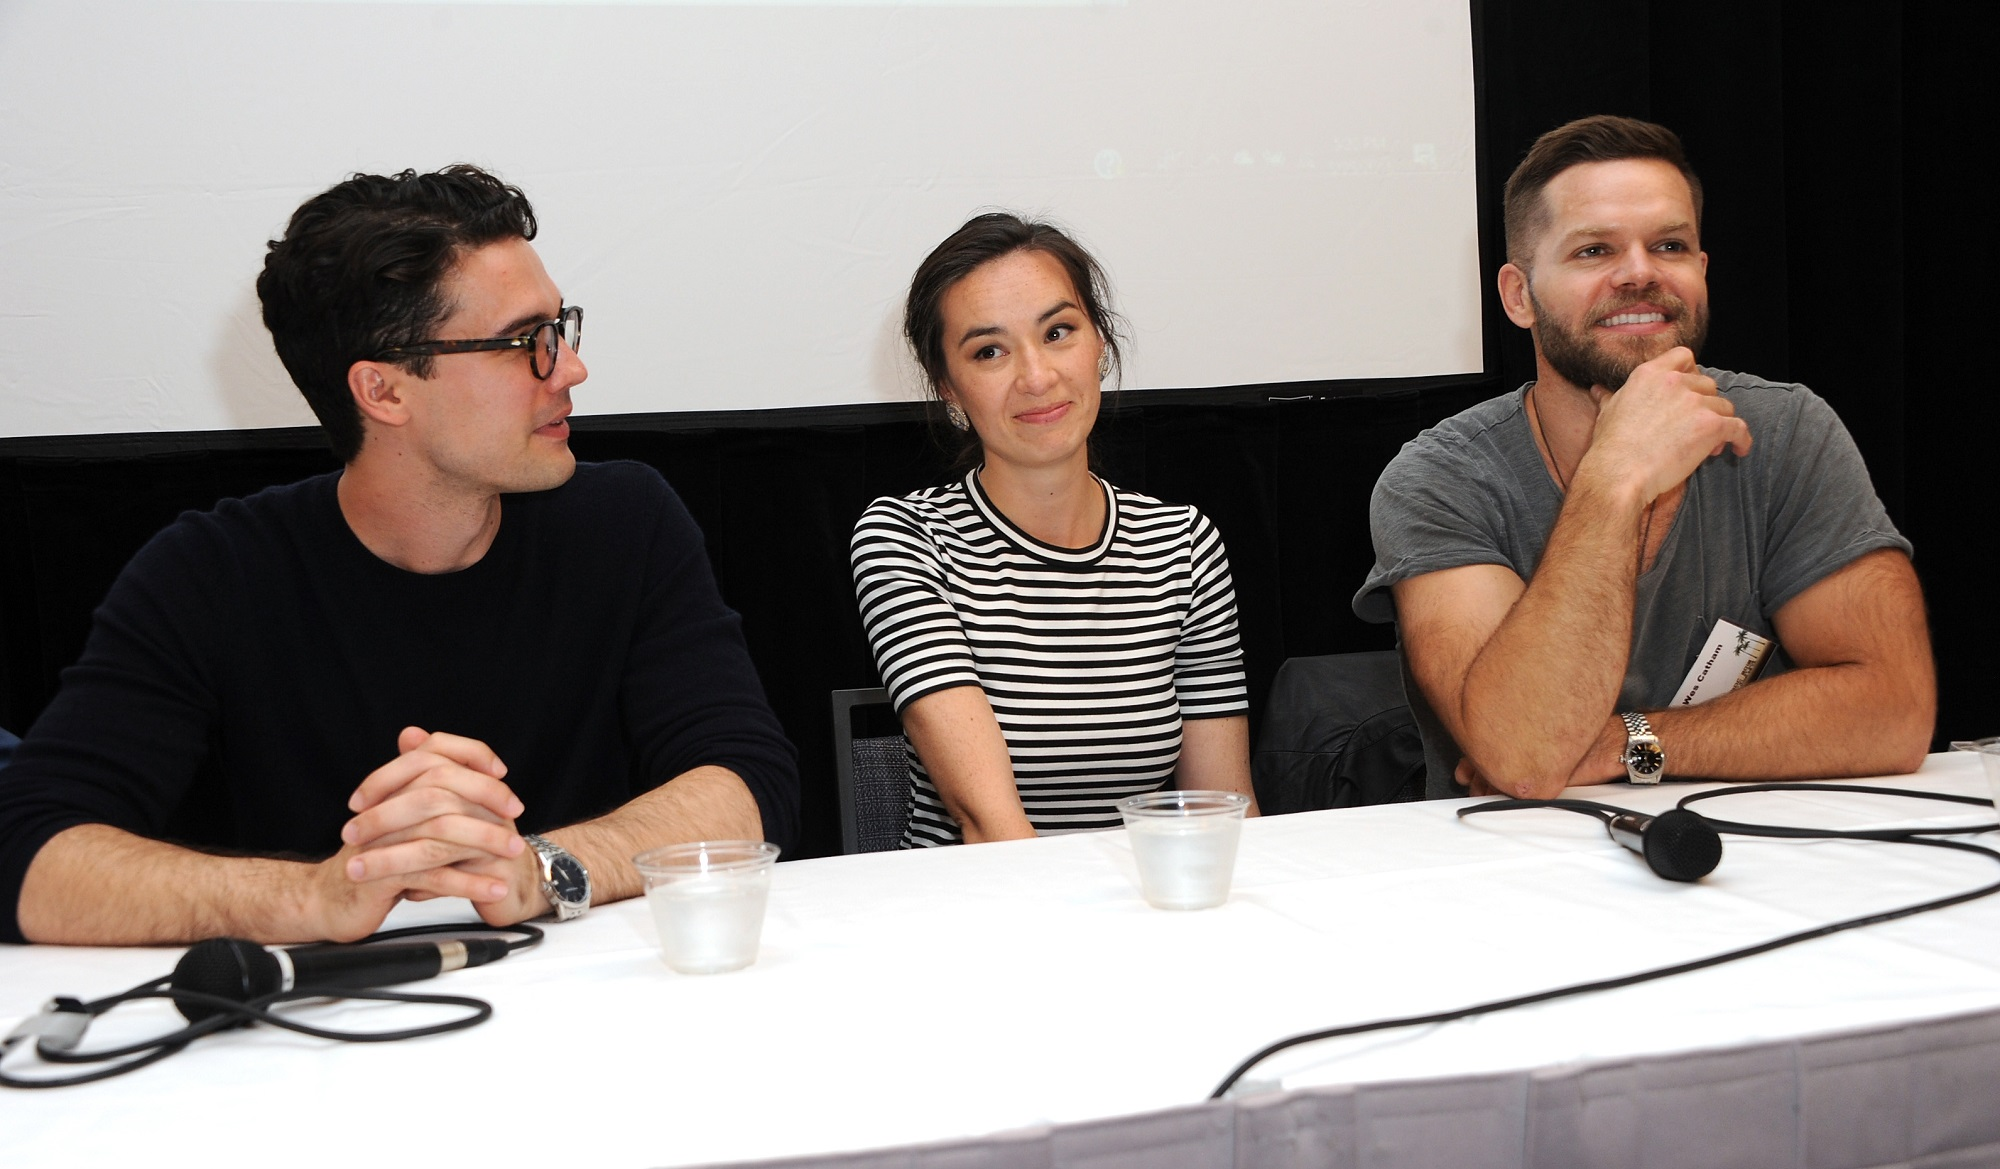 Steven Strait, Cara Geen and Wes Chatham of The Expanse